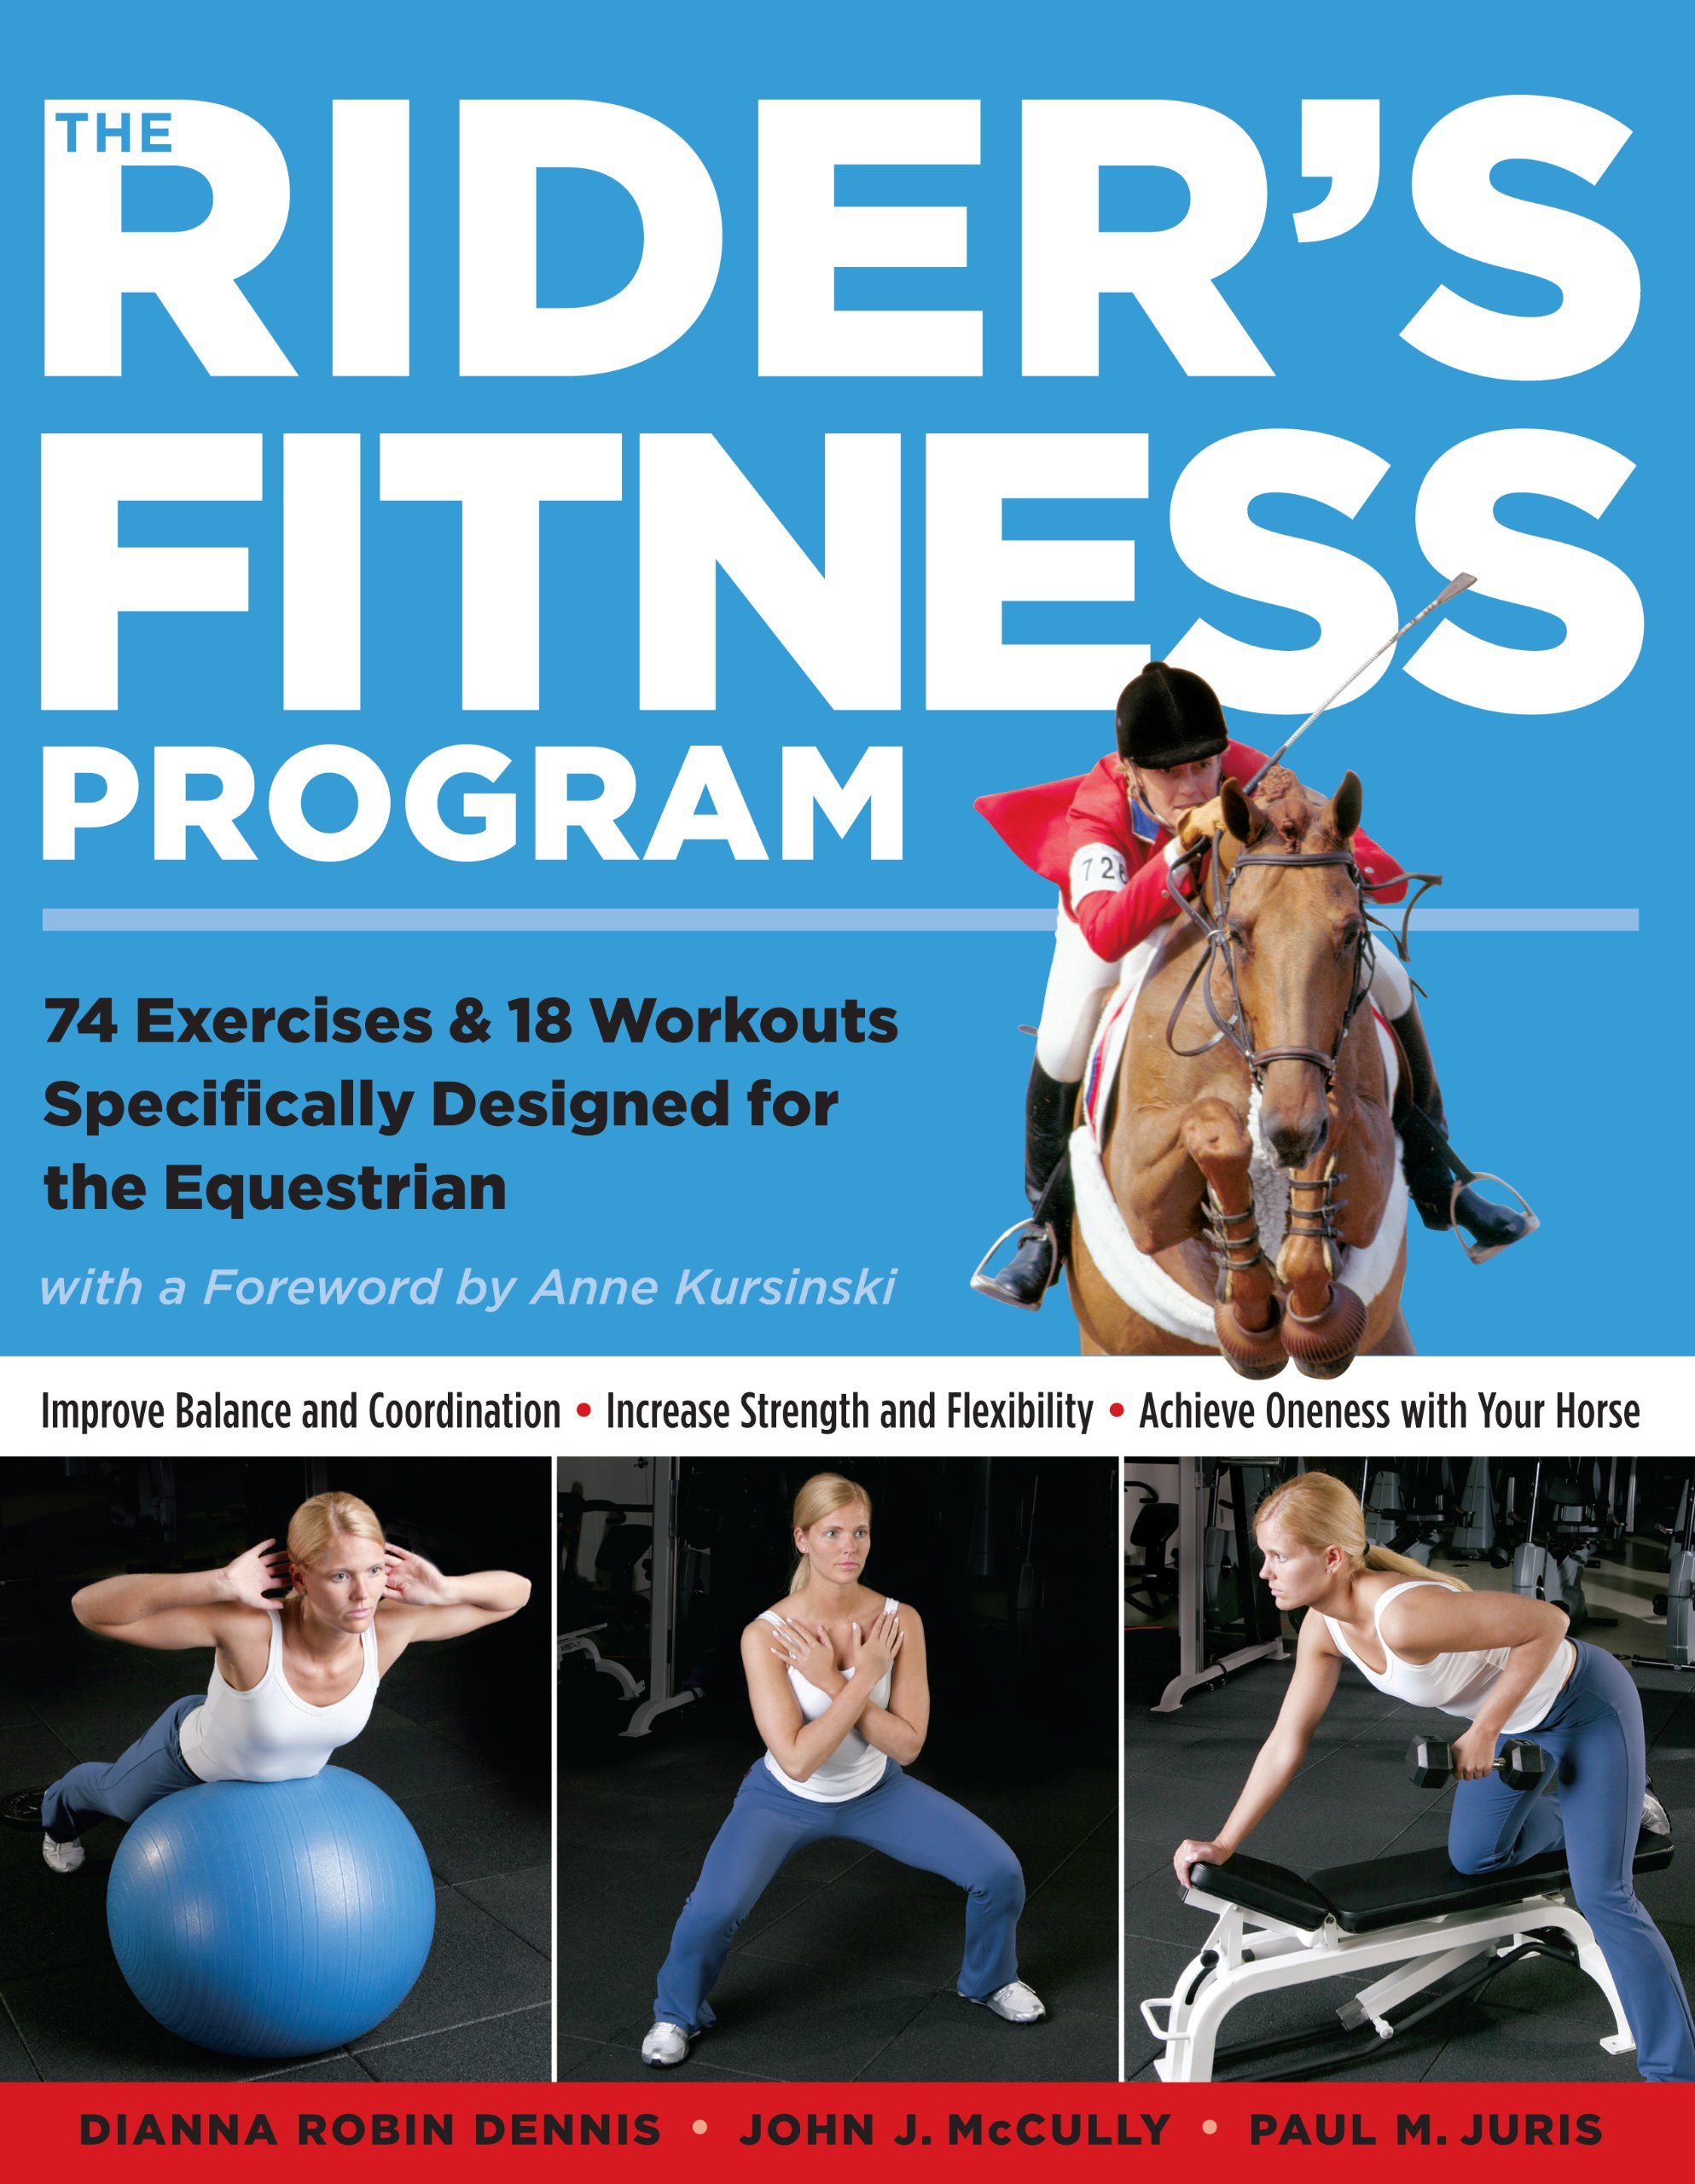 Gen x labs sports amp fitness performance kit 11 week program 4 - The Rider S Fitness Program 74 Exercises 18 Workouts Specifically Designed For The Equestrian Dianna Robin Dennis Johnny J Mccully Paul M Juris